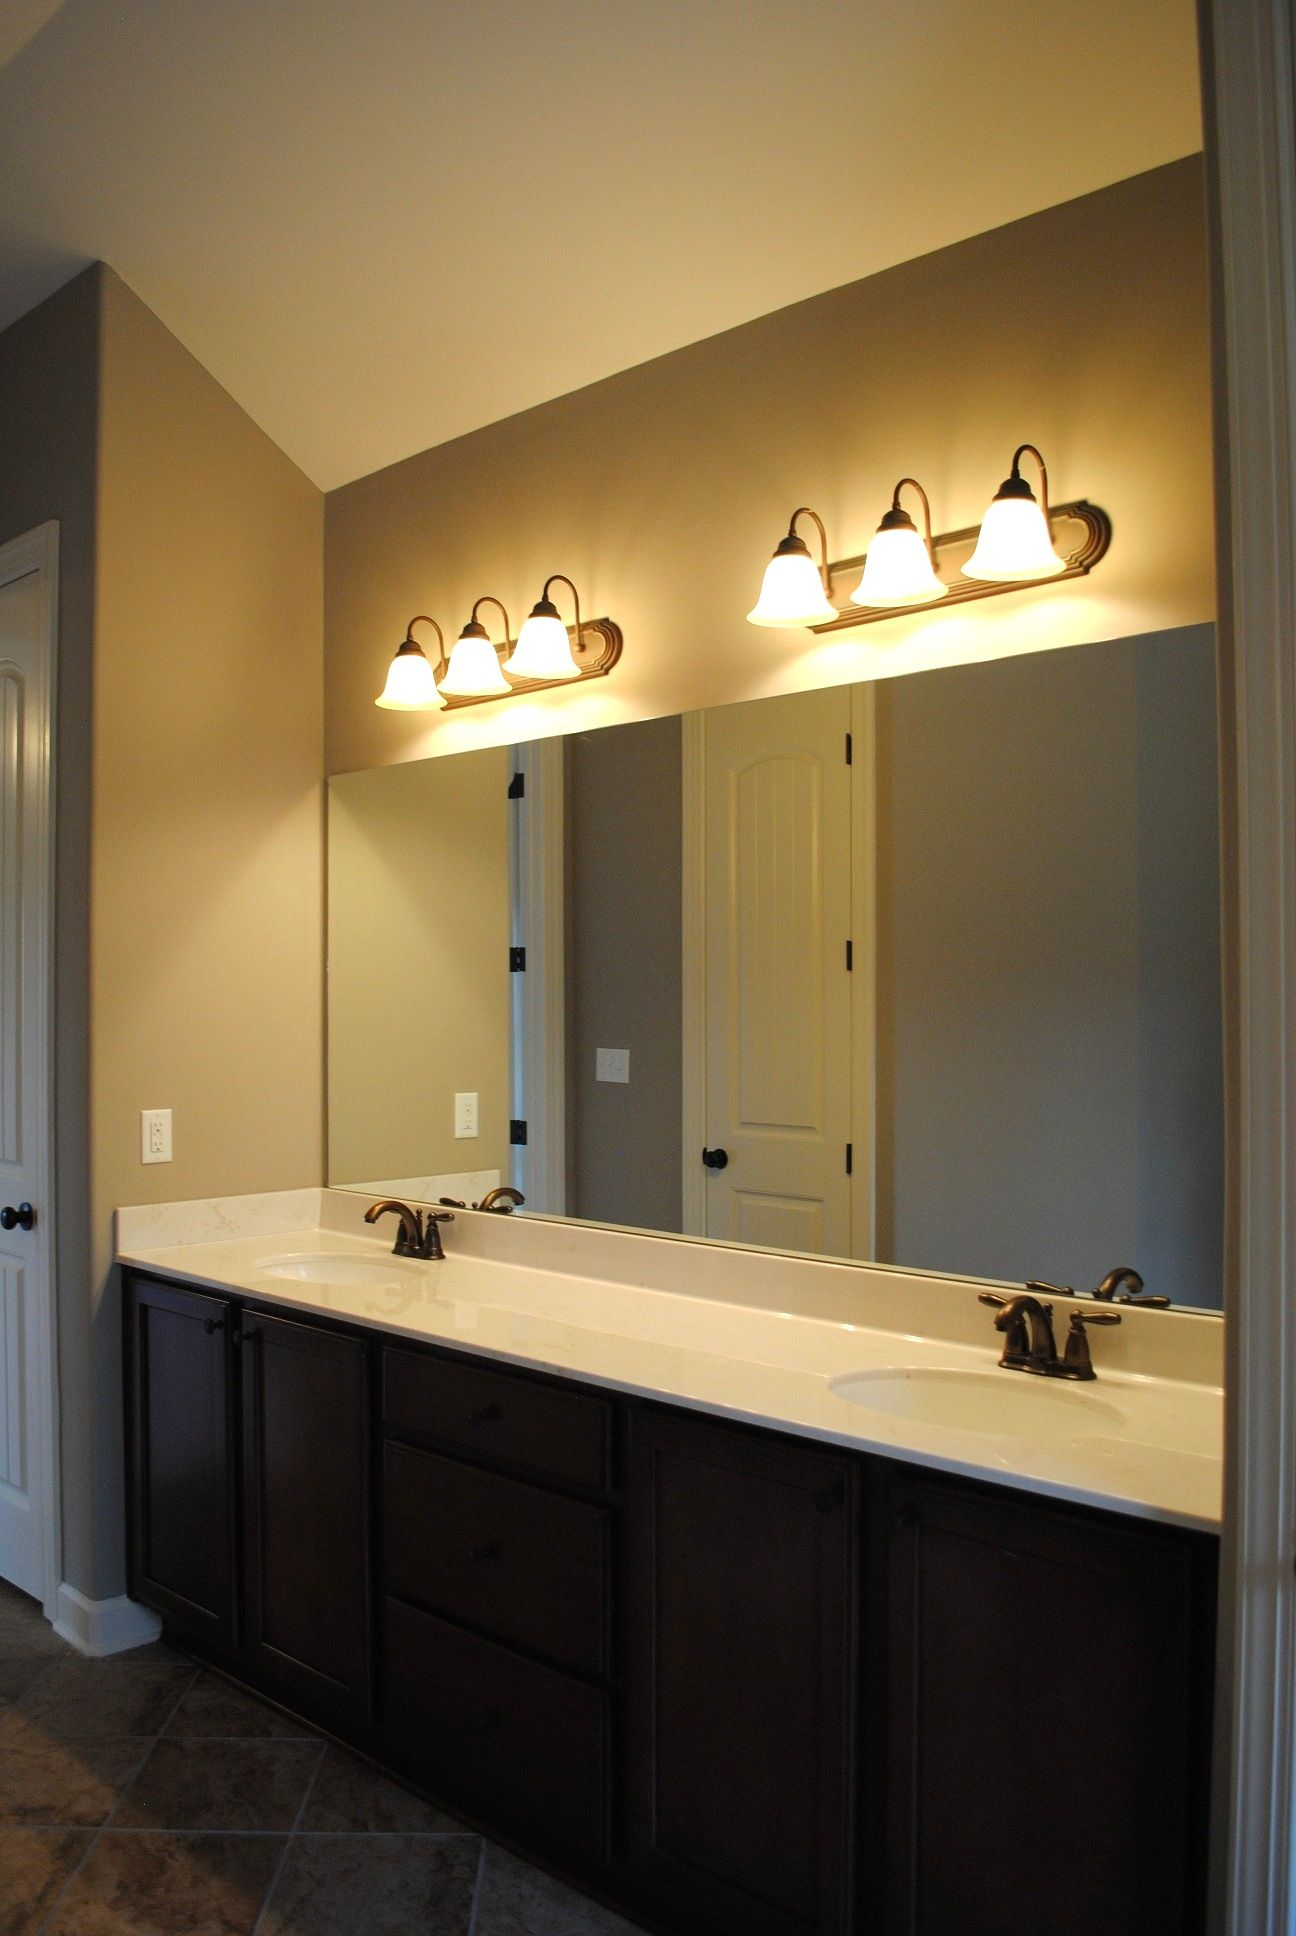 Bathroom light placement over mirror contemporary decor bathroom light placement over mirror mozeypictures Image collections